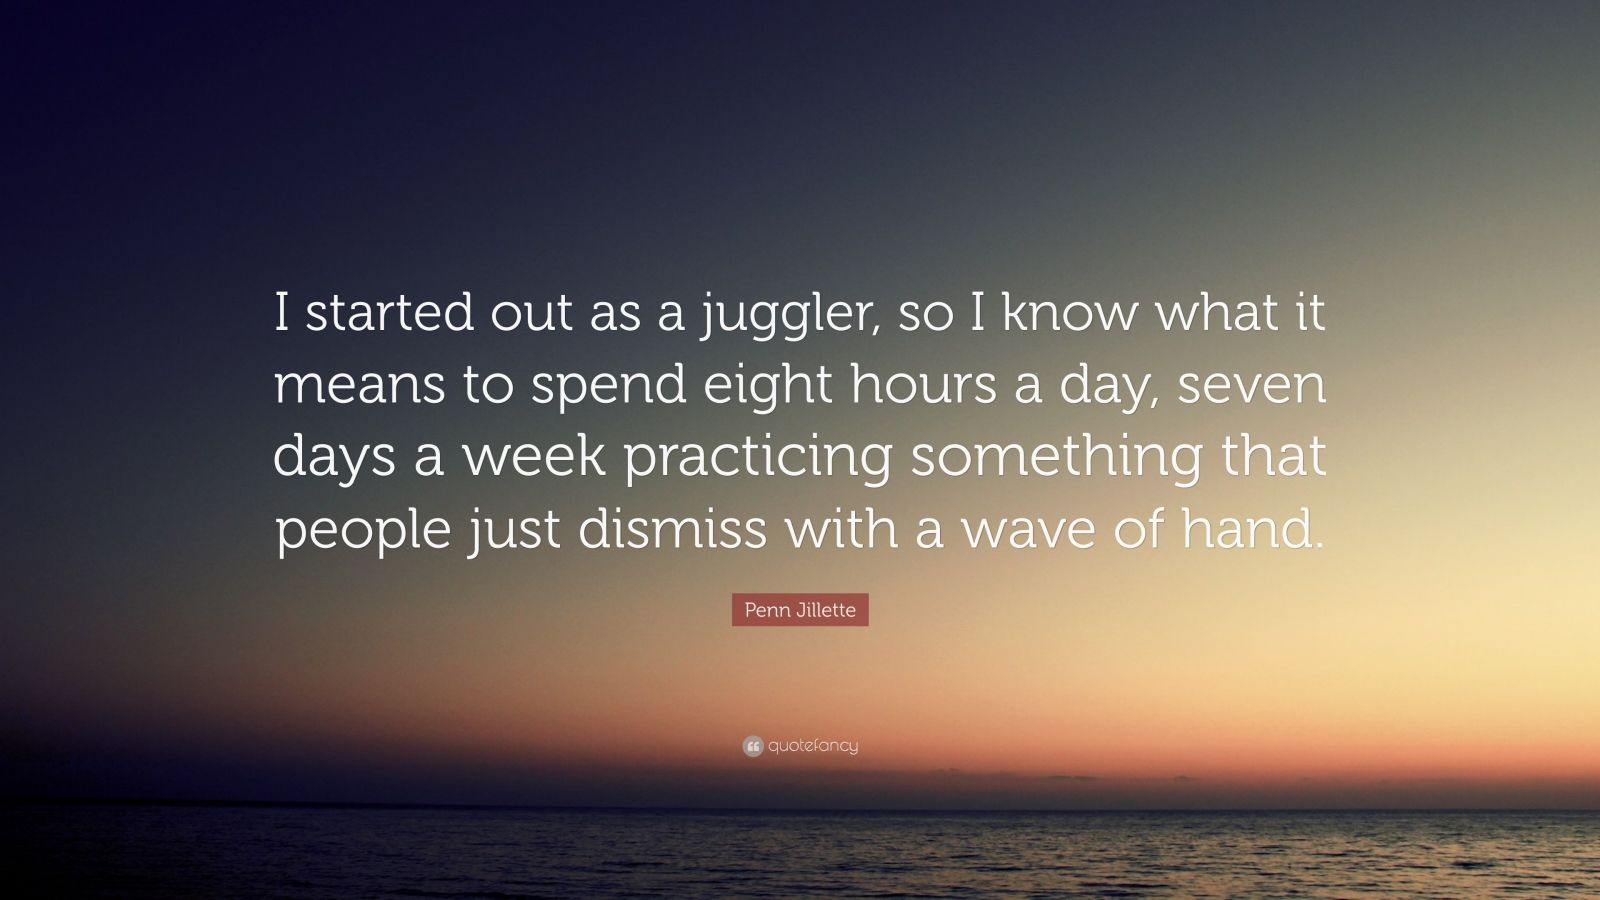 """Penn Jillette Quote: """"I started out as a juggler, so I know what it means to spend eight hours a day, seven days a week practicing something that people just dismiss with a wave of hand."""""""